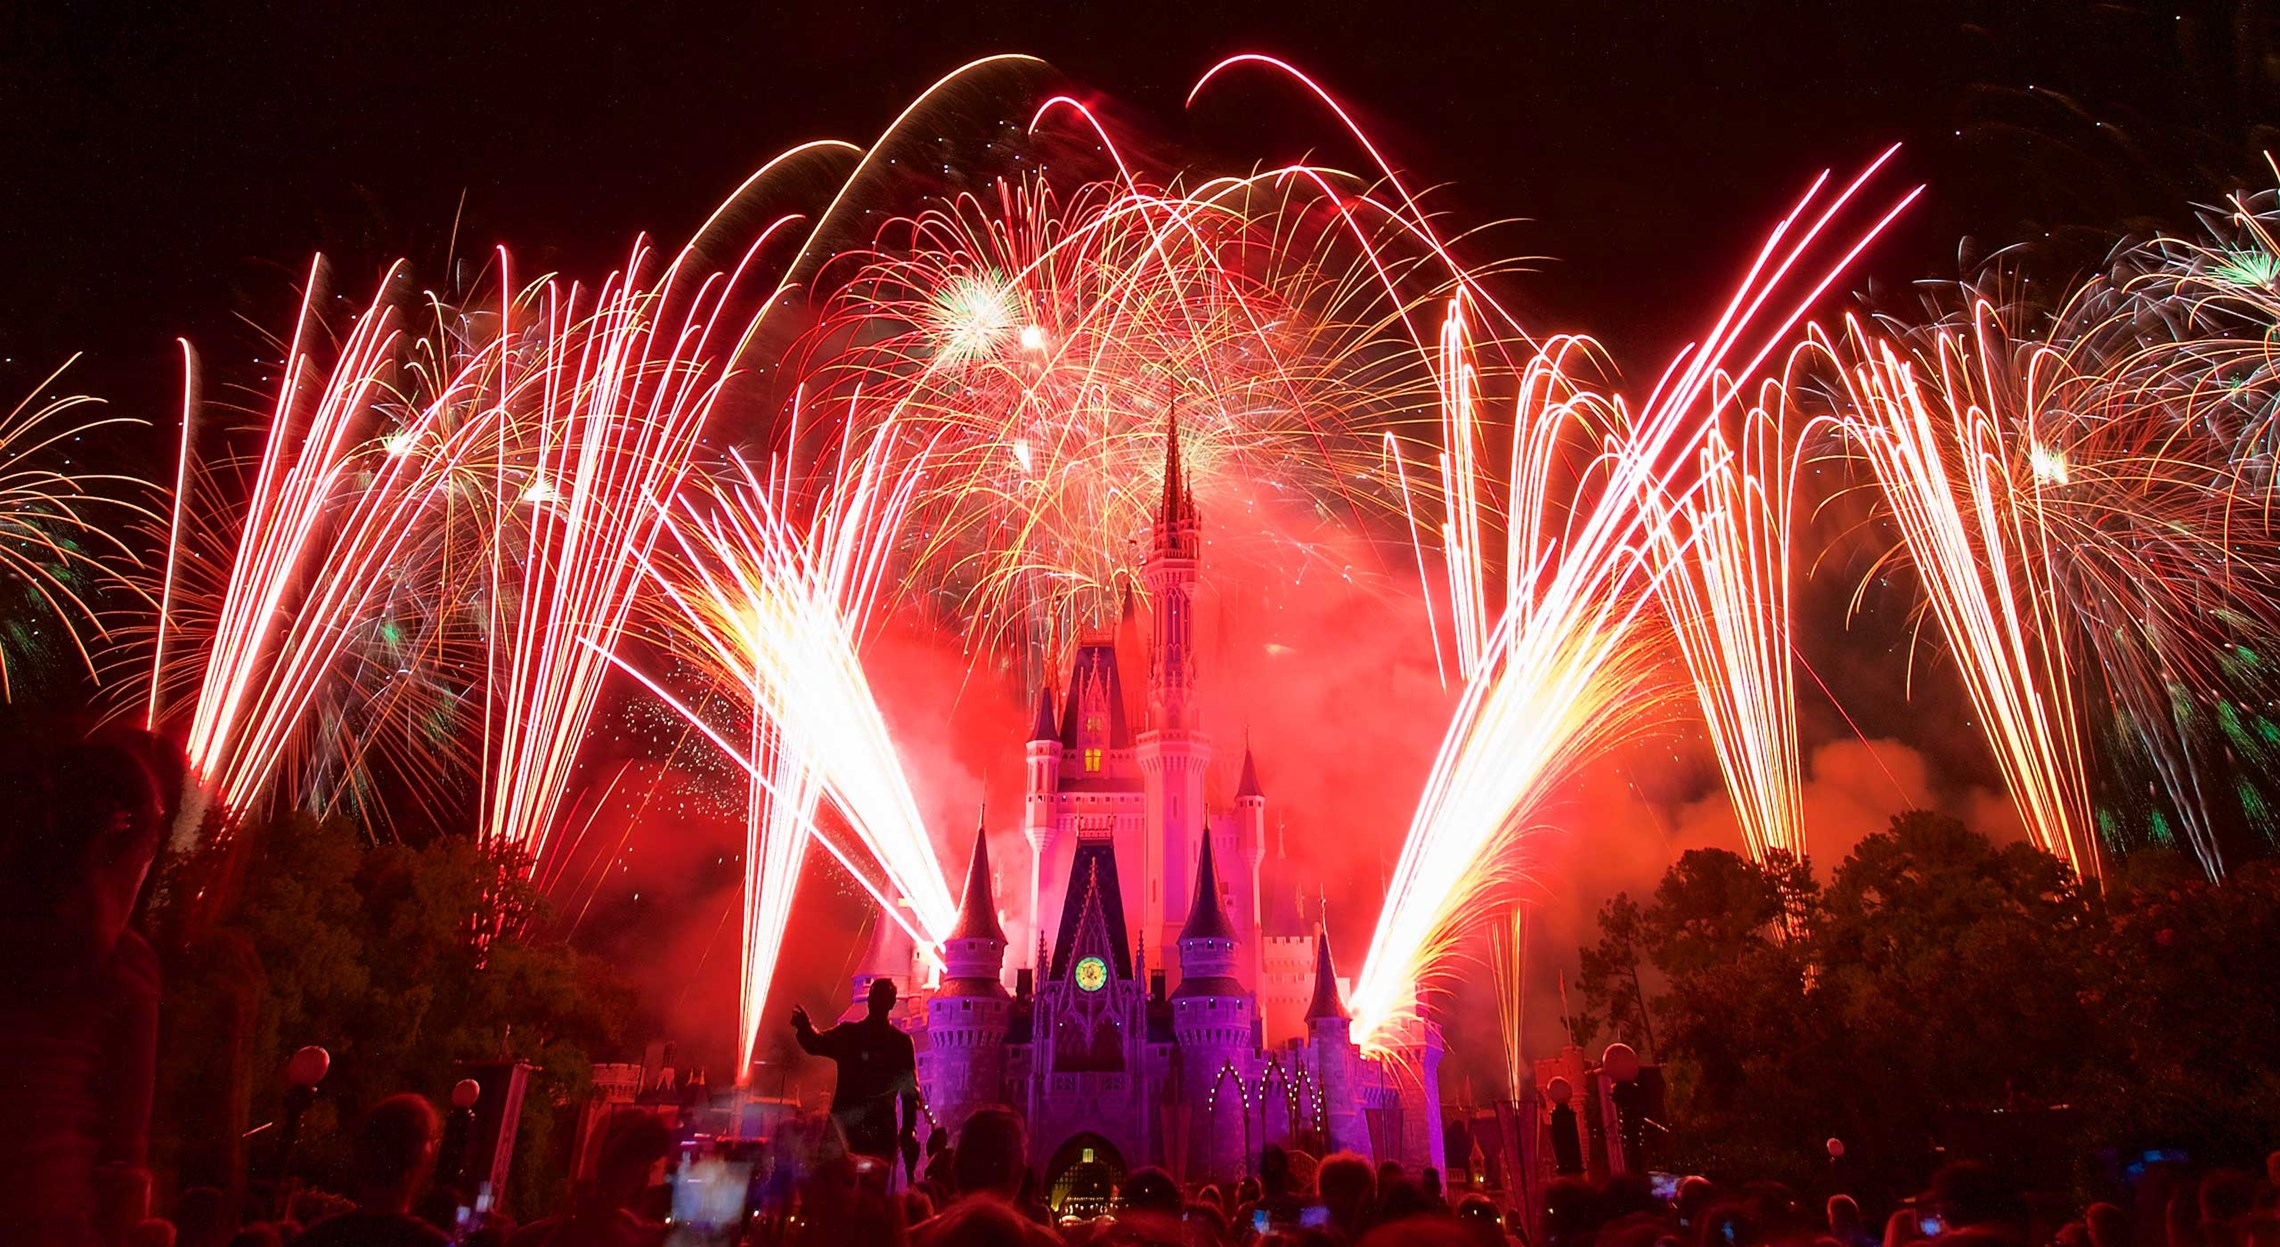 Fireworks at the Magic Kingdom